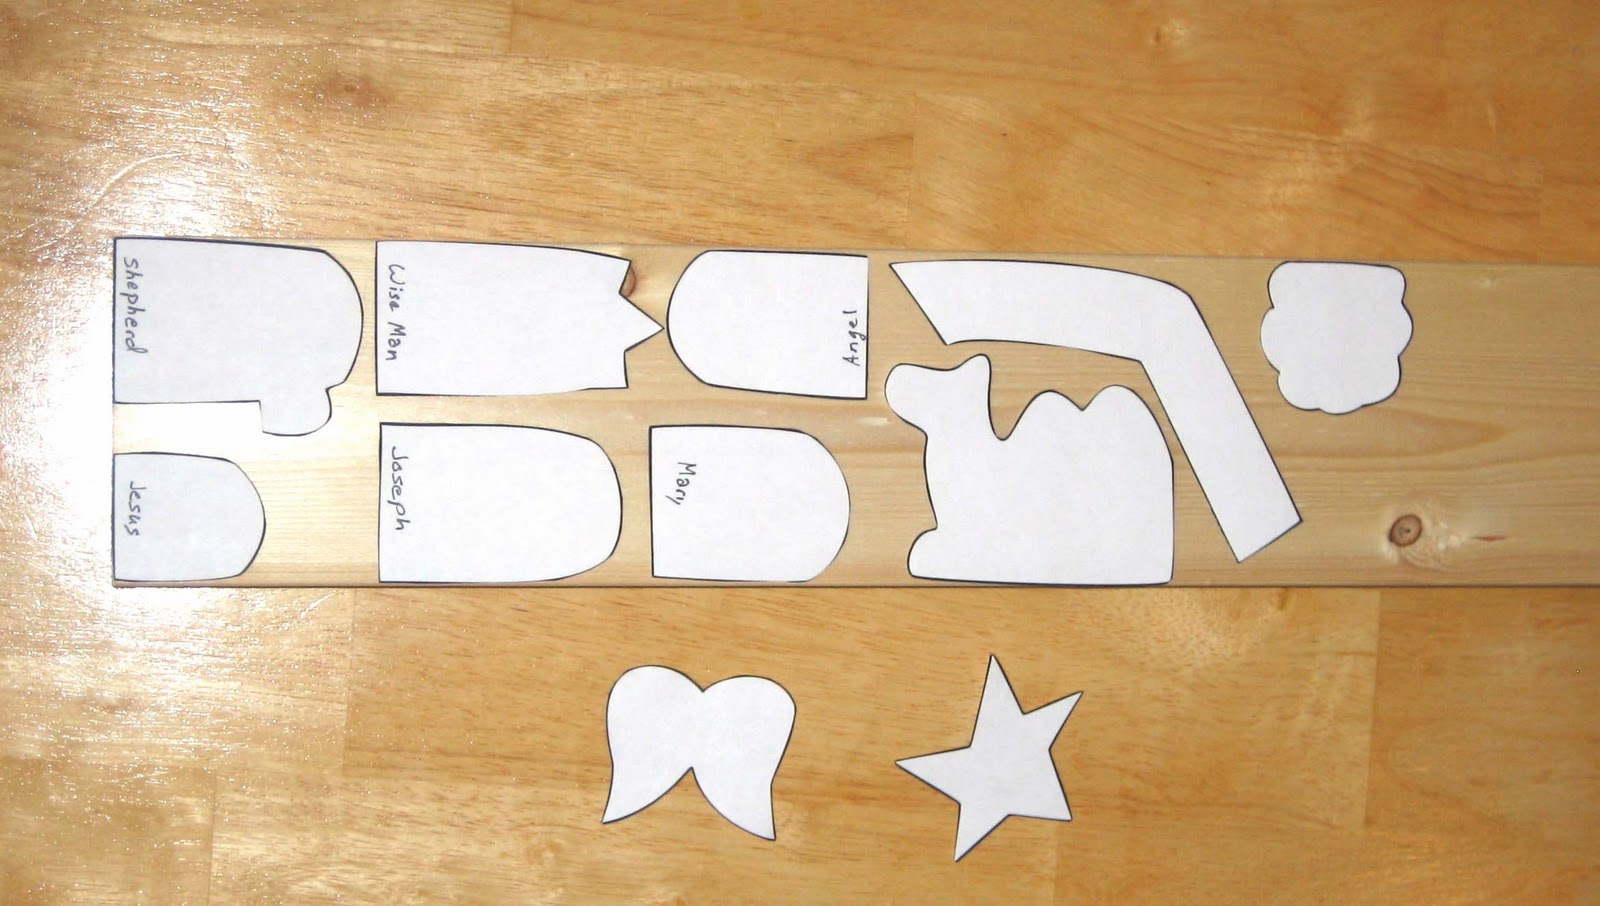 After you print and cut out the pattern, arrange the pieces on your ...